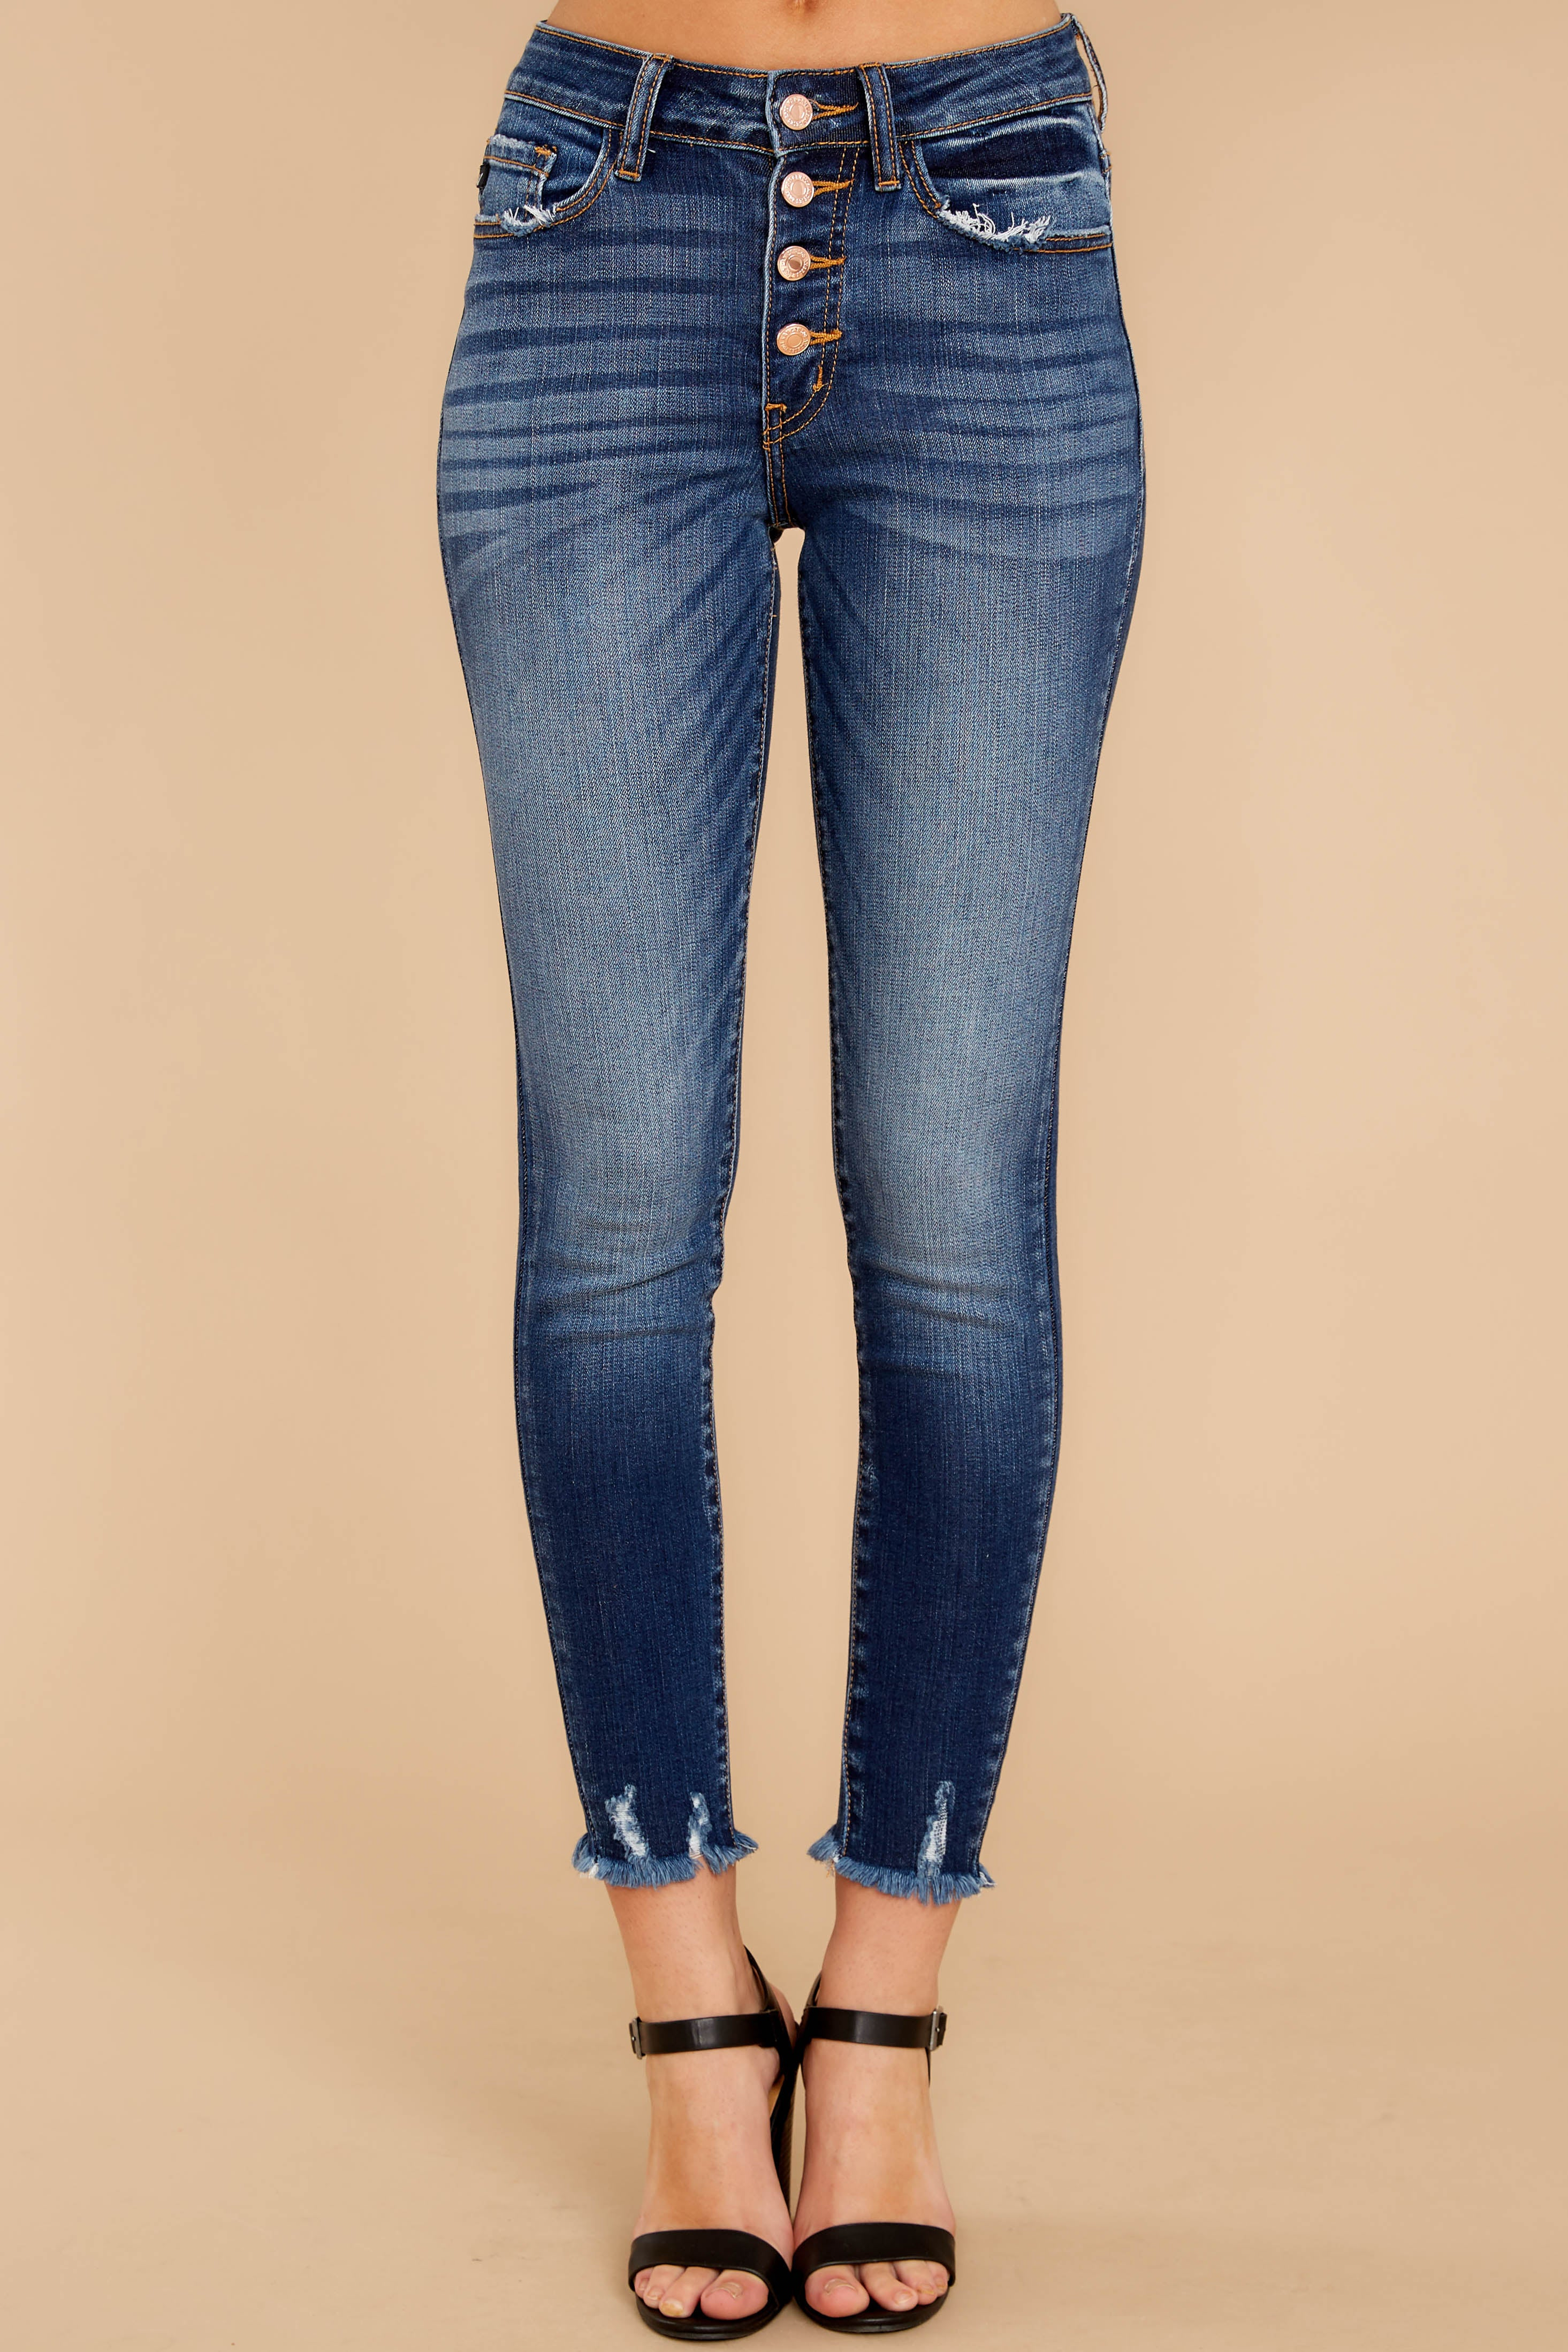 Keep This Going Dark Wash Skinny Jeans